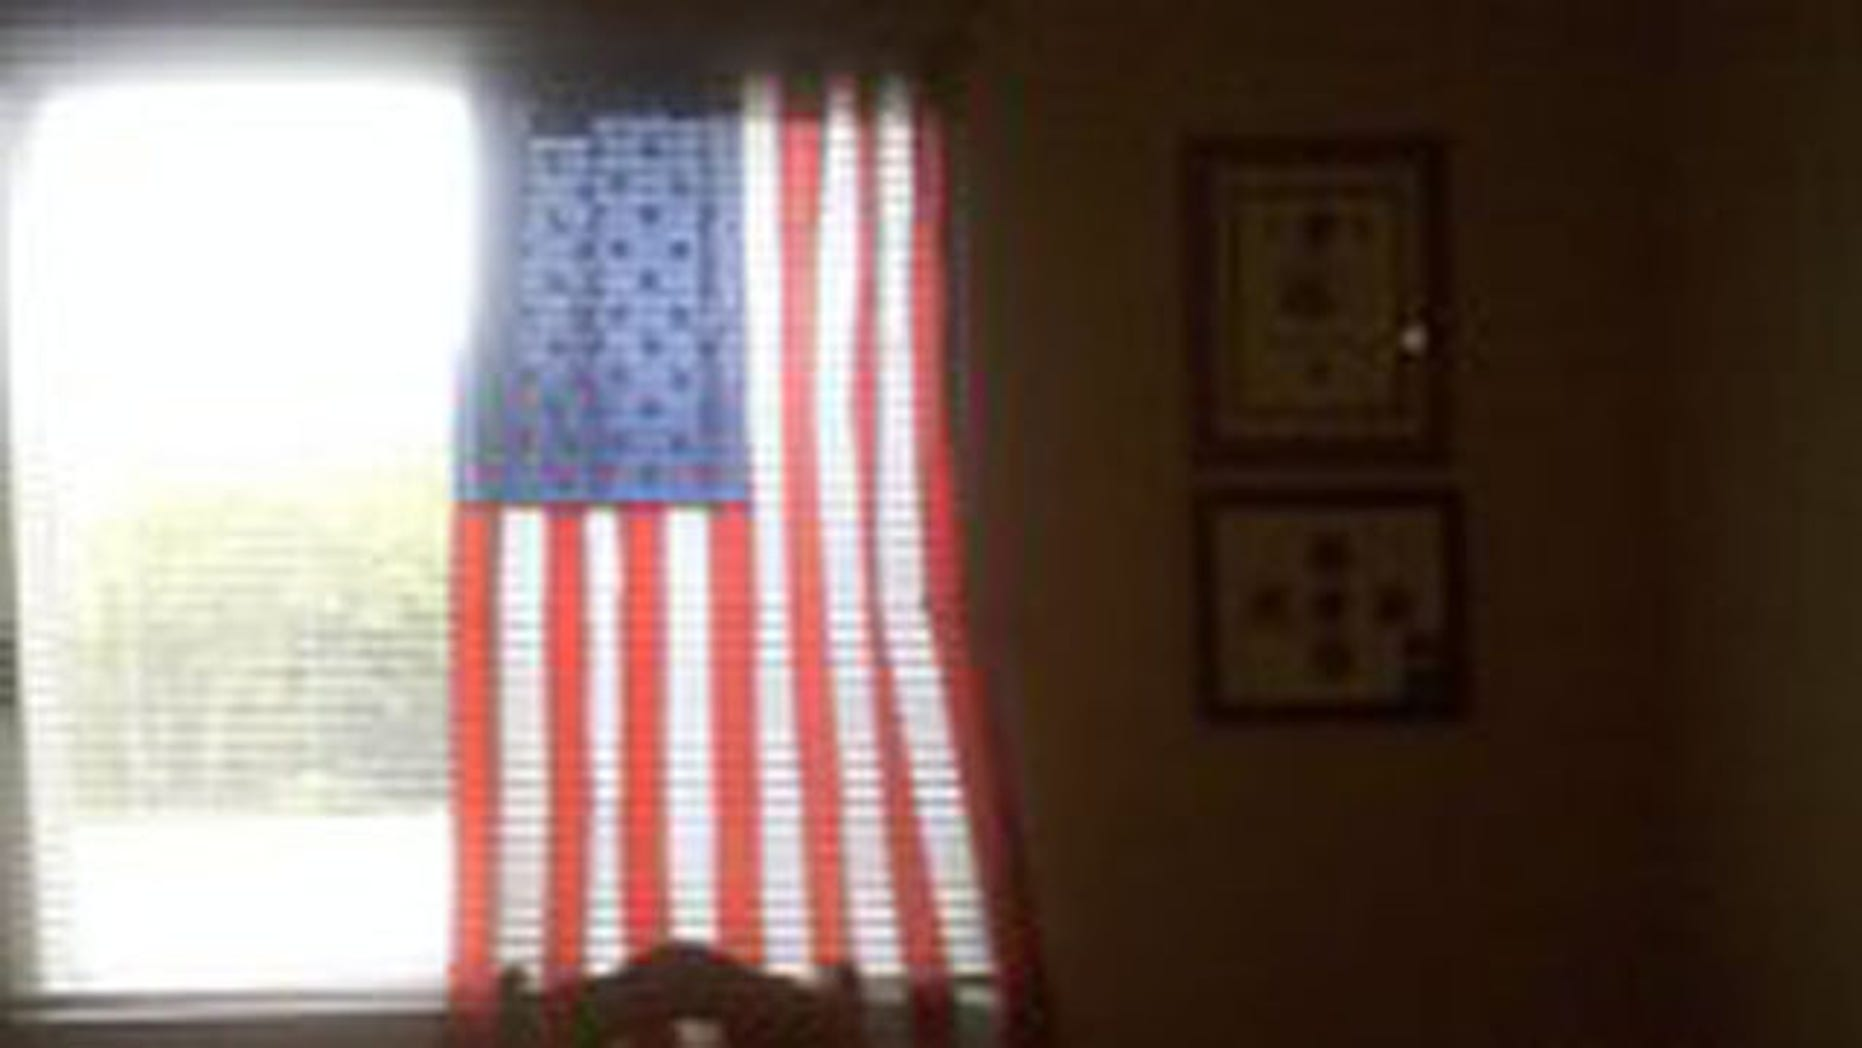 """Charlie Price, 28, of Oshkosh, Wis., and officials at Midwest Realty Management have come to a """"mutual agreement"""" that allows the veteran to continue displaying the patriotic symbol"""